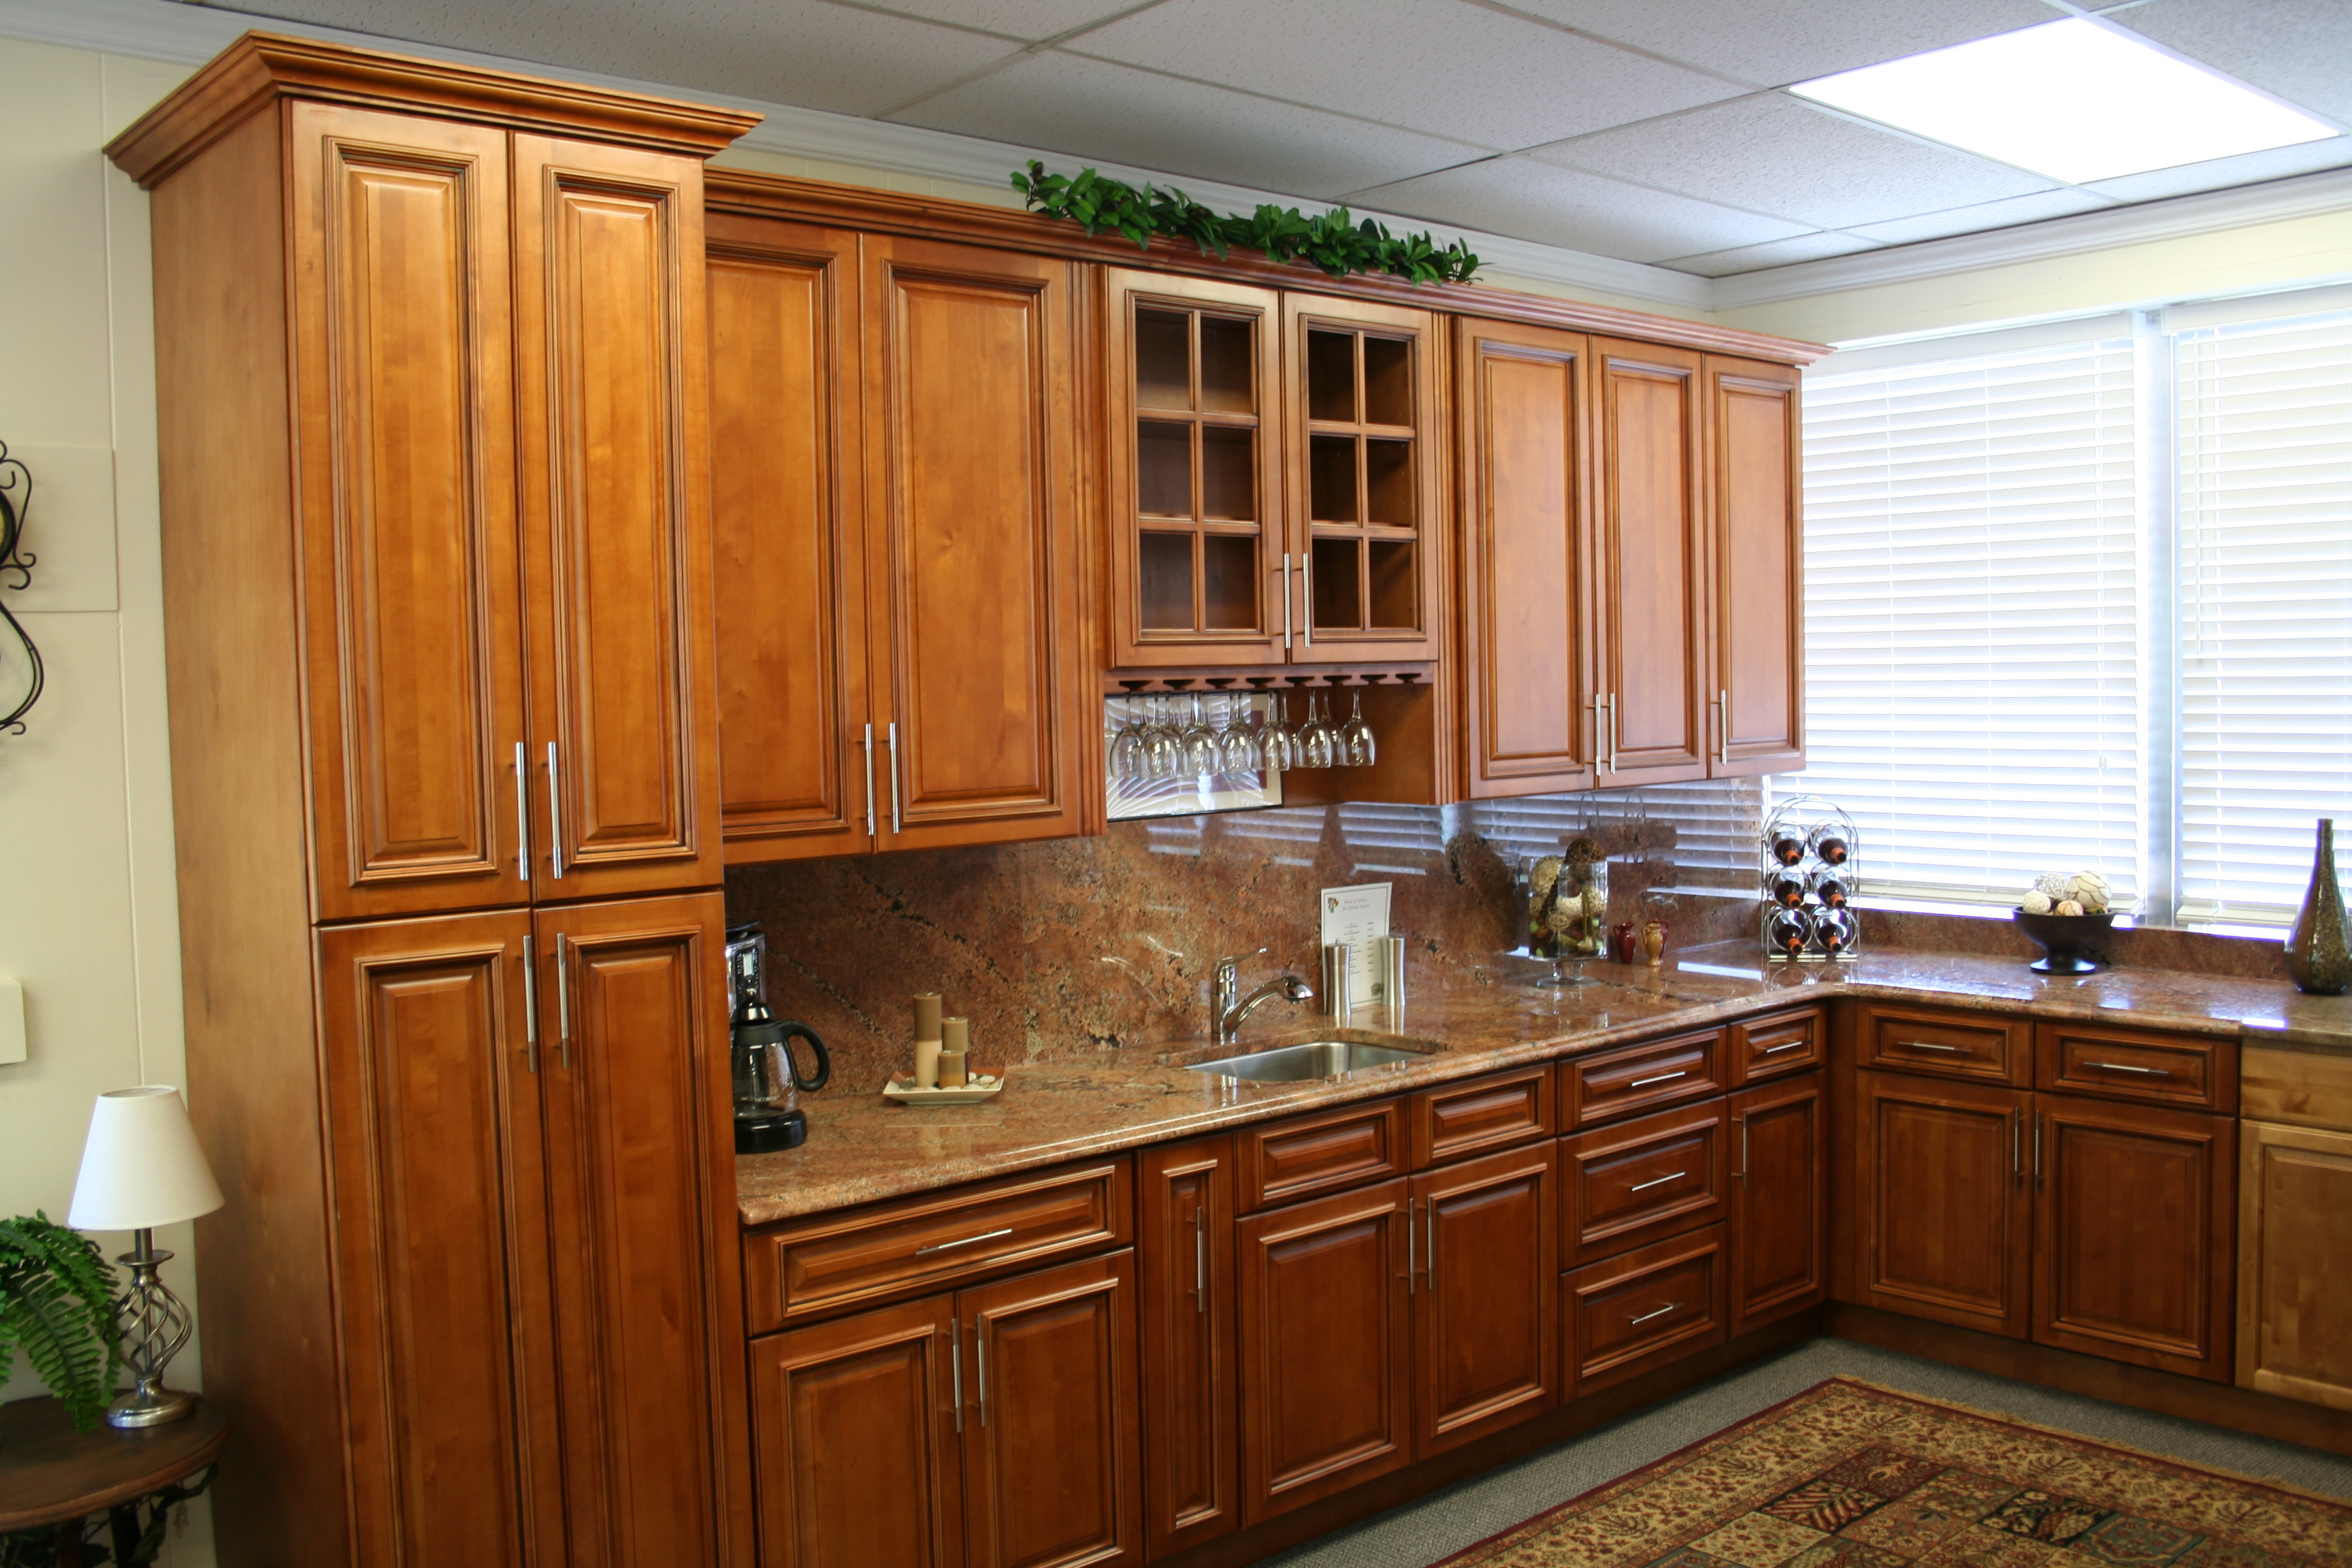 Glazed Maple Cabinets | Cabinets and Granite on Granite Countertops With Maple Cabinets  id=24856